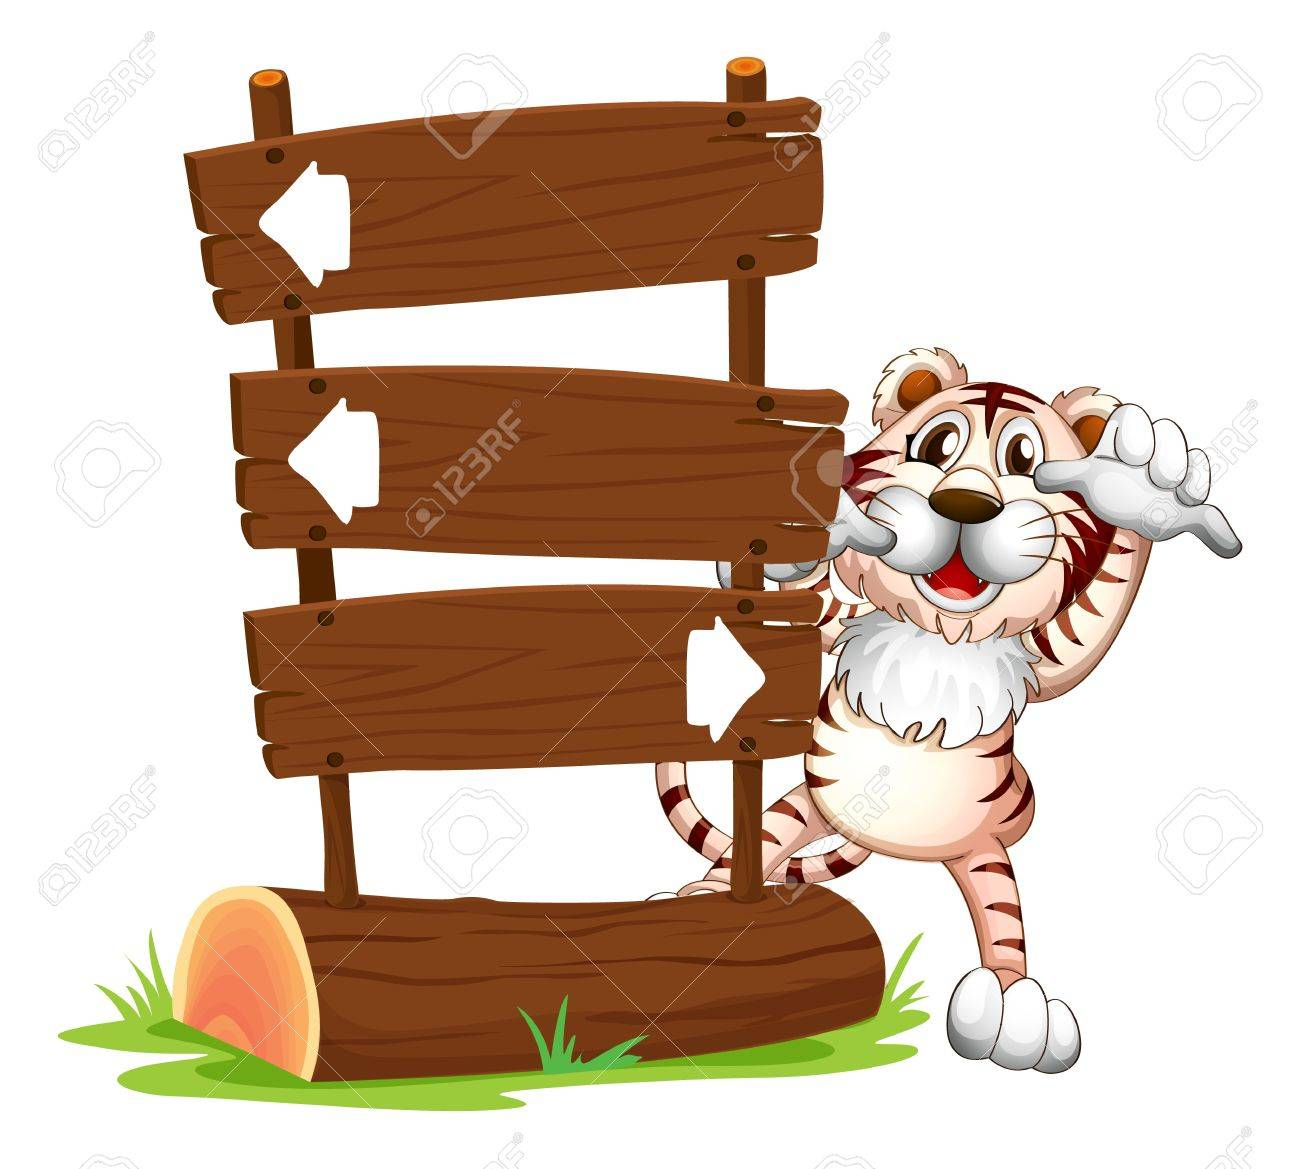 Illustration of a tiger hiding at the back of a signboard Stock Vector - 17521587